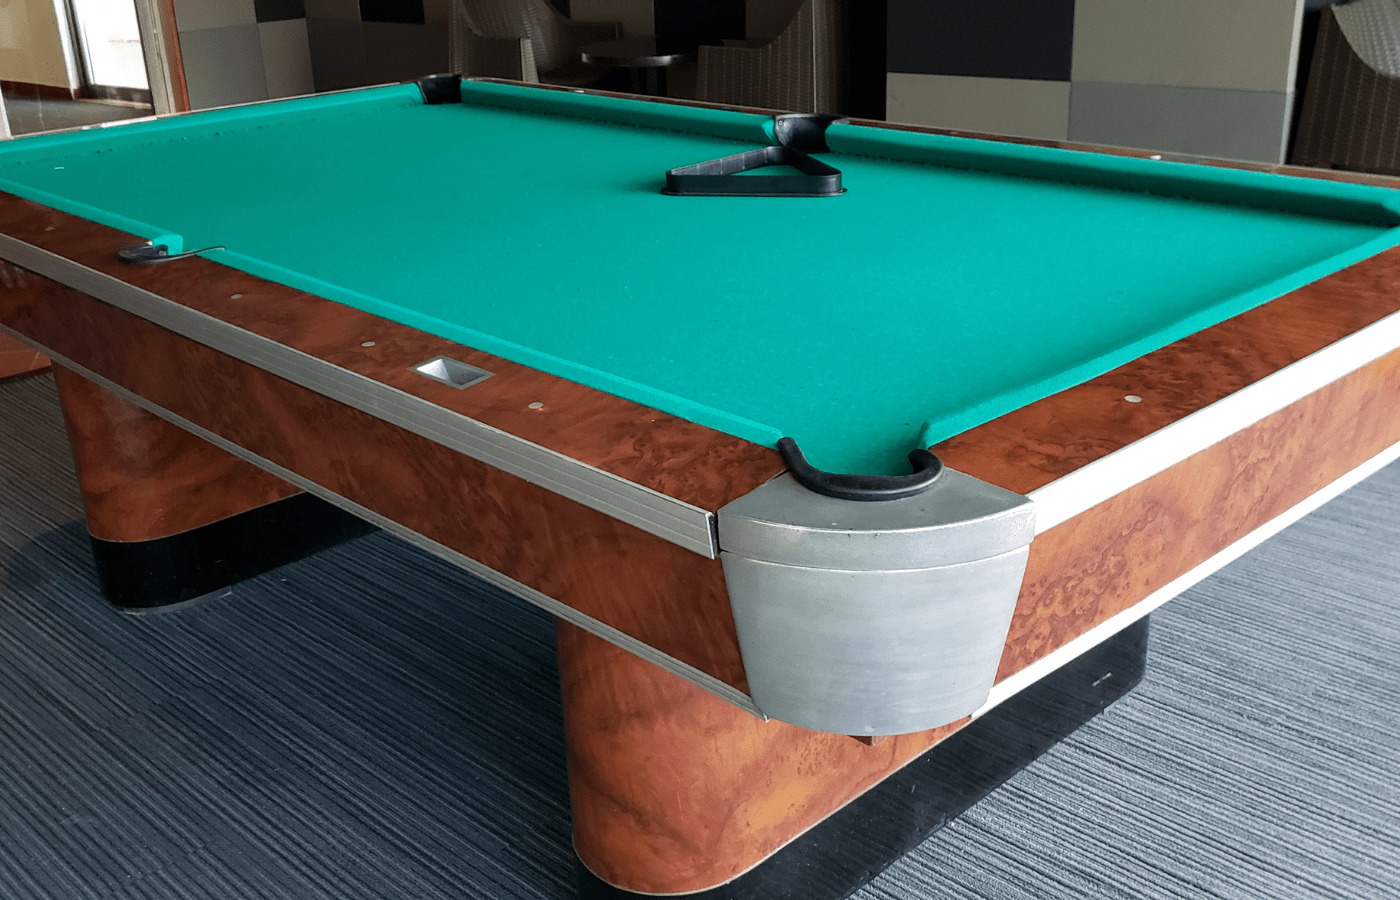 can you use candle wax on a pool table